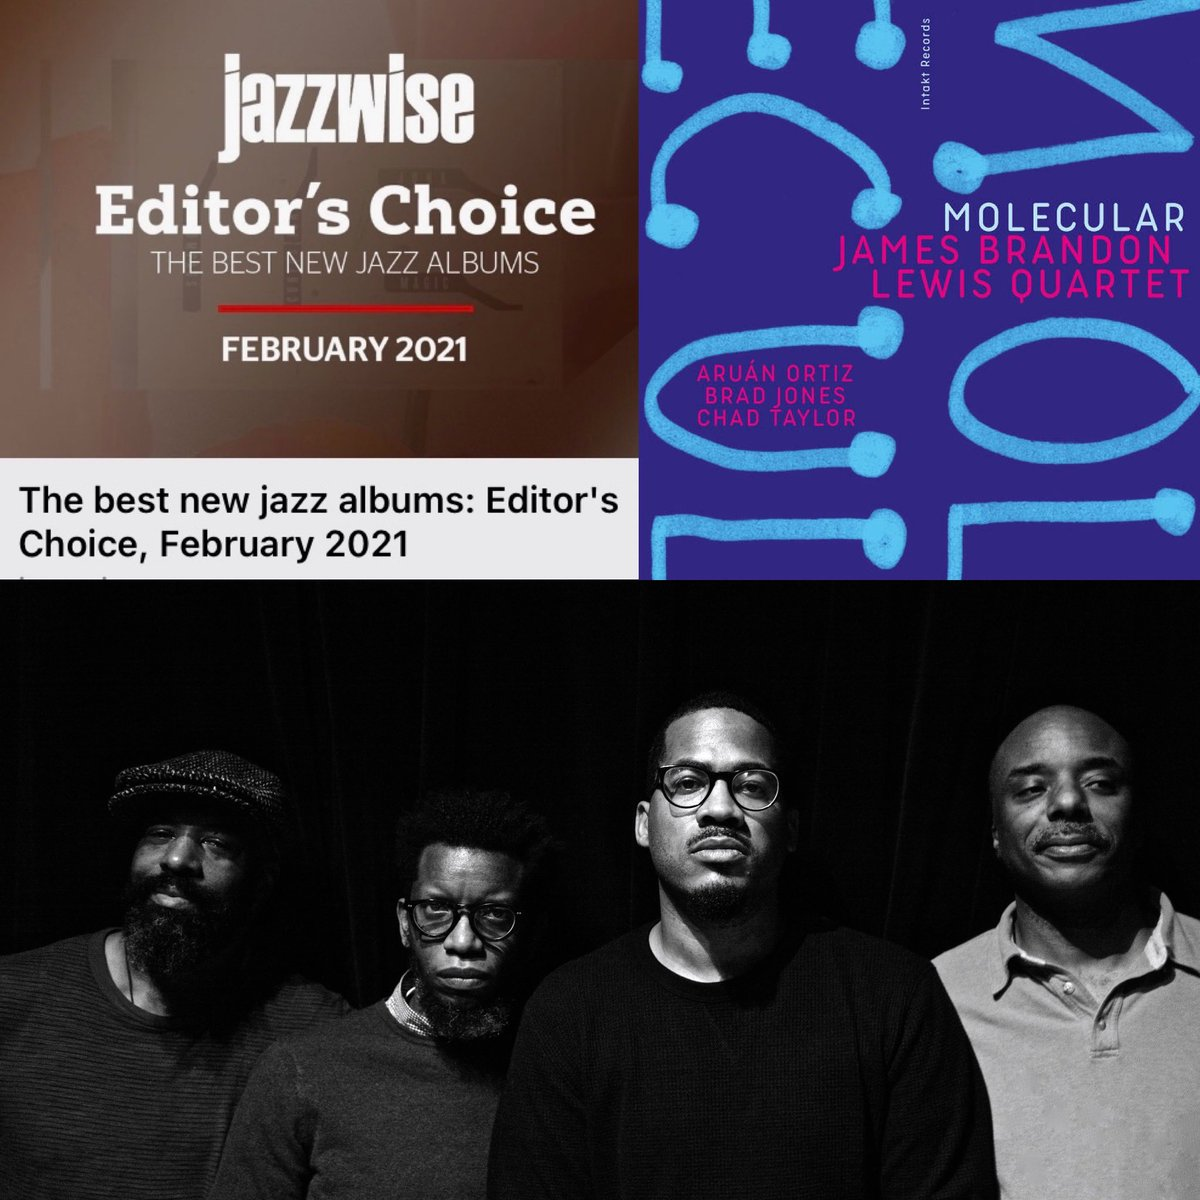 Molecular named Best New Jazz for the Month of February / Check out @jazzwisemagazine Editor's Choice ! Molecular Out Now @intakt_records @bandcamp Featuring : Aruan Ortiz, Chad Taylor , Brad Jones ,music #jazz #nofilter #music #jazz #news #best #magazine #quartet #press